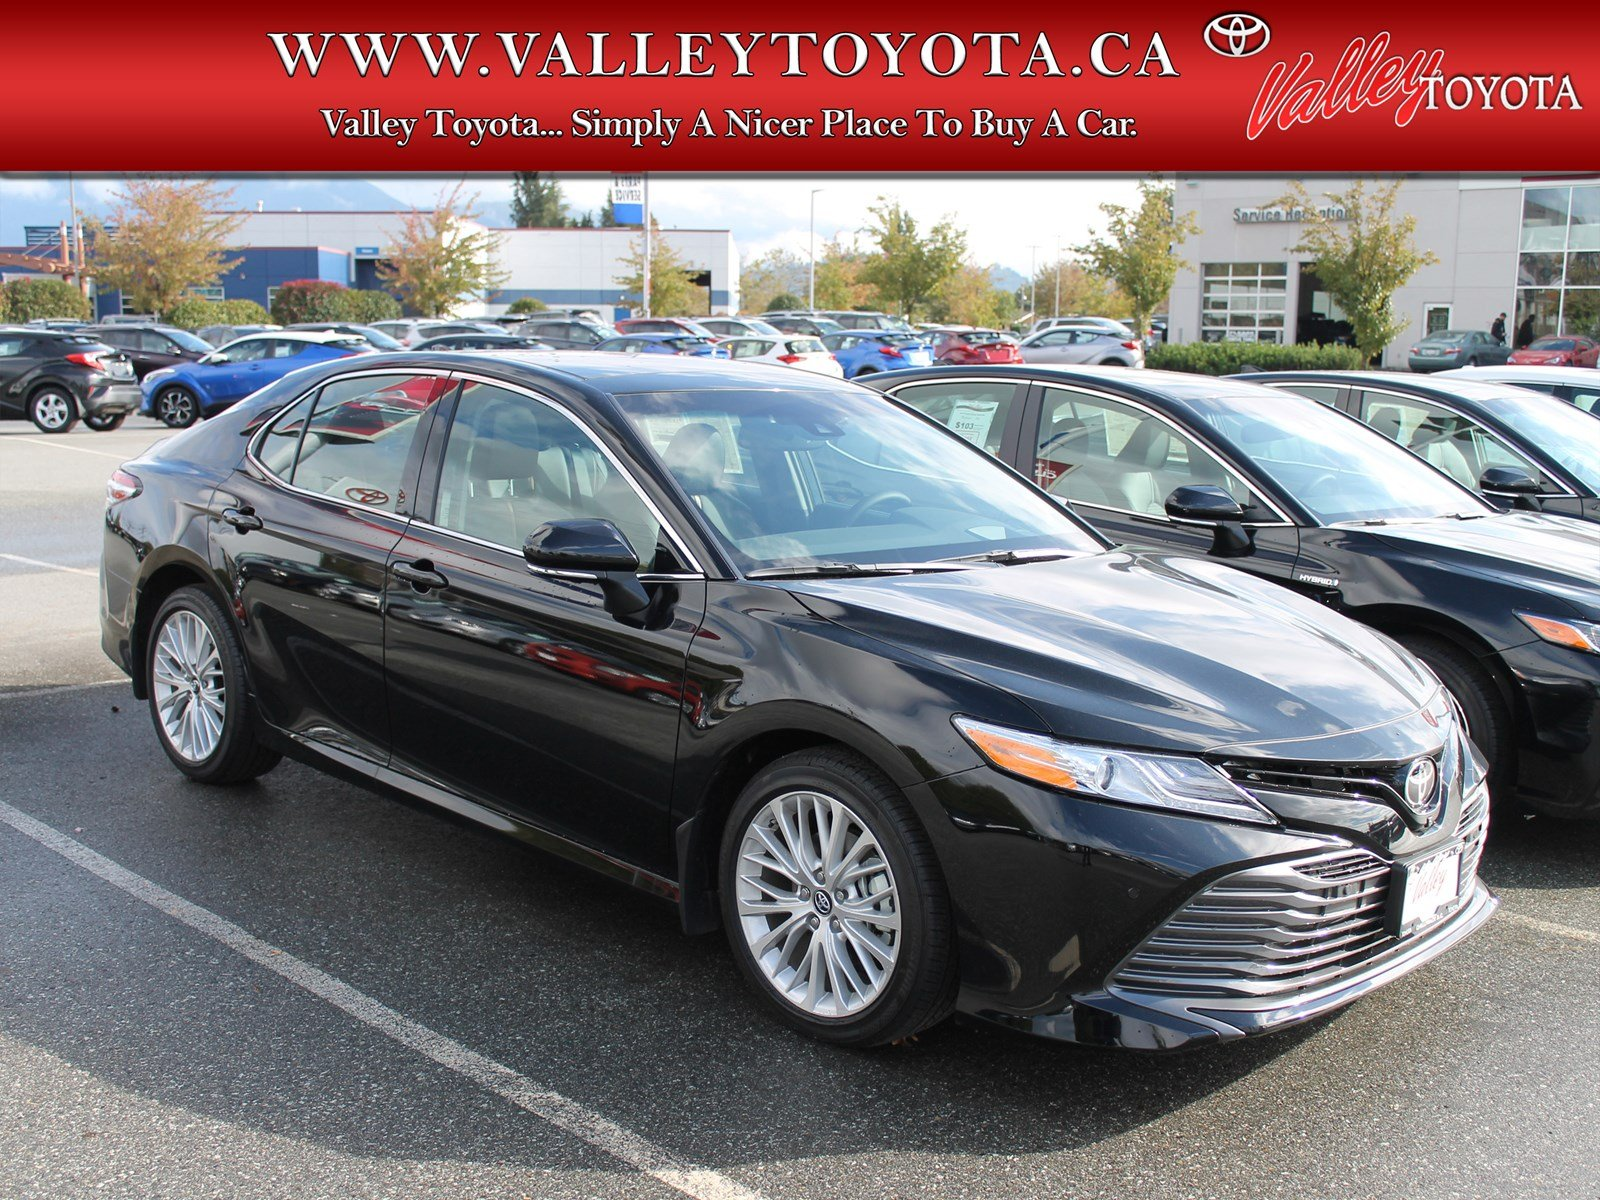 vehicle in scotia en used tusket le inventory camry nova yarmouth toyota